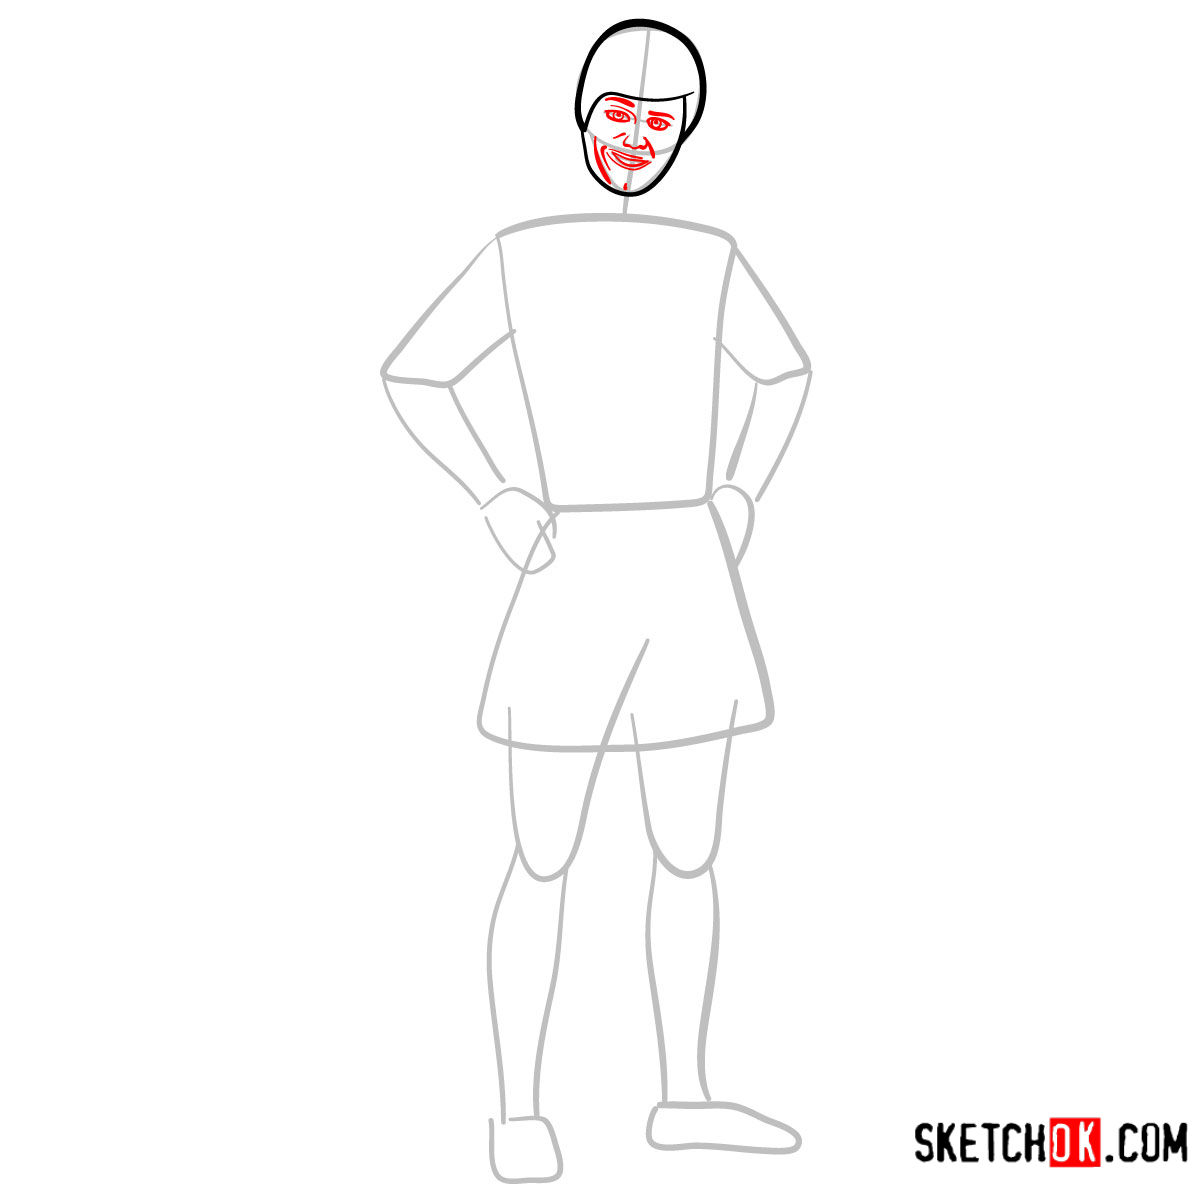 How to draw Ken from Toy Story - step 04